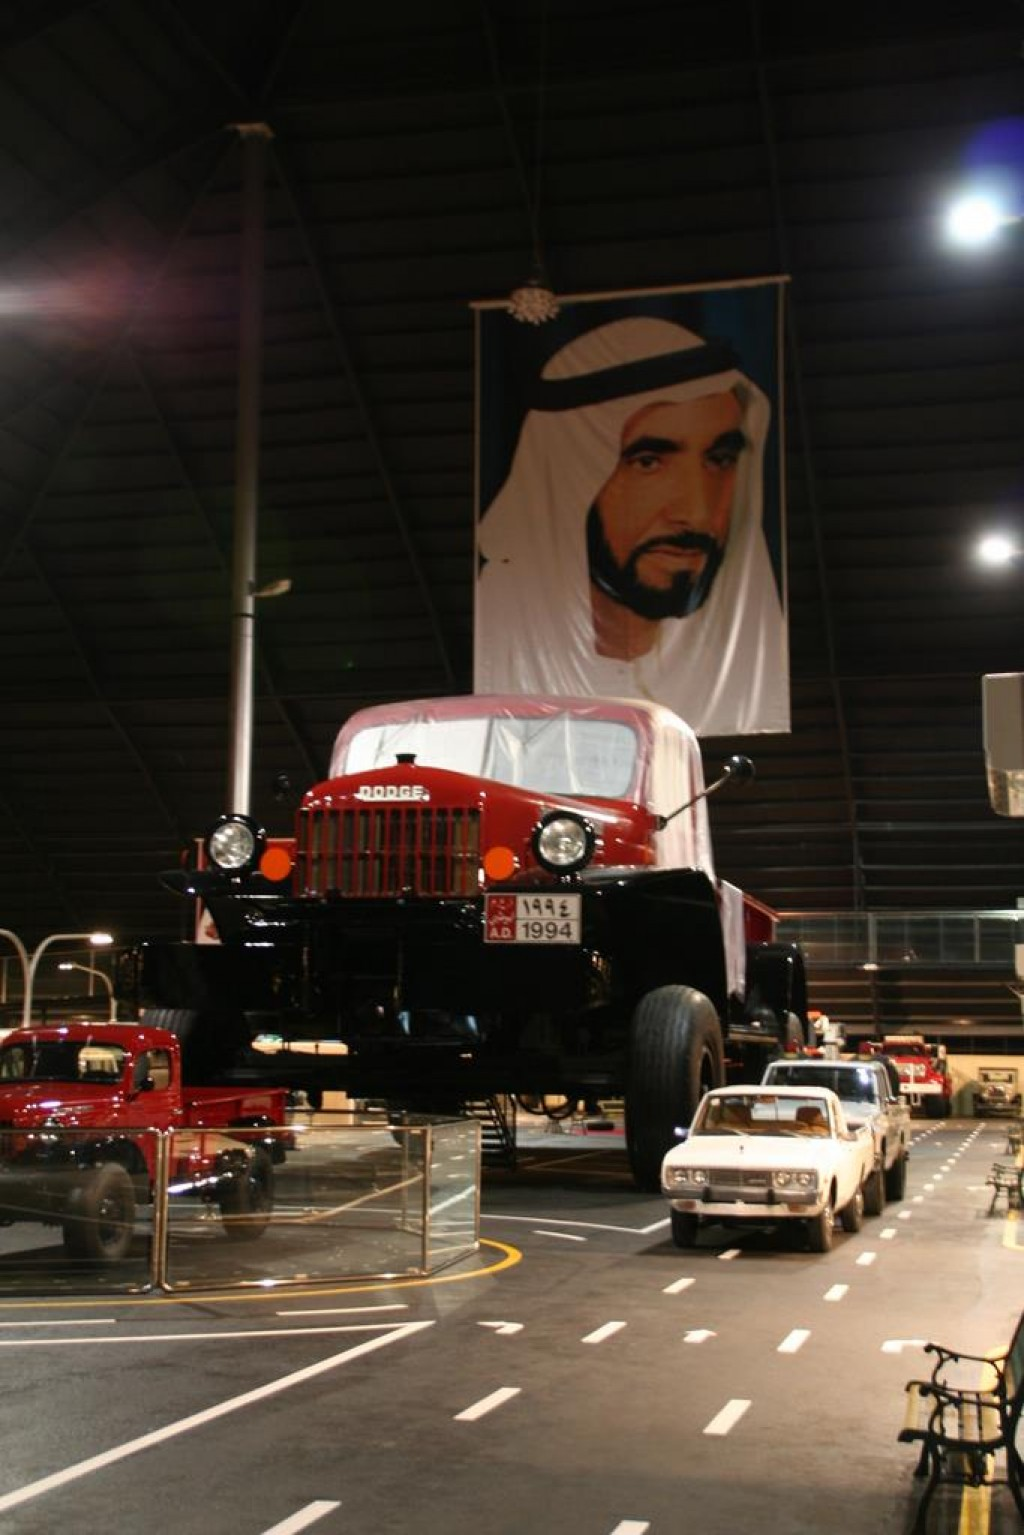 Although it wasn't officially open yet, we were able to sneak a peak at the Rainbow Sheikh's car museum, including the largest pickup truck in the world.  It was a surreal experience.